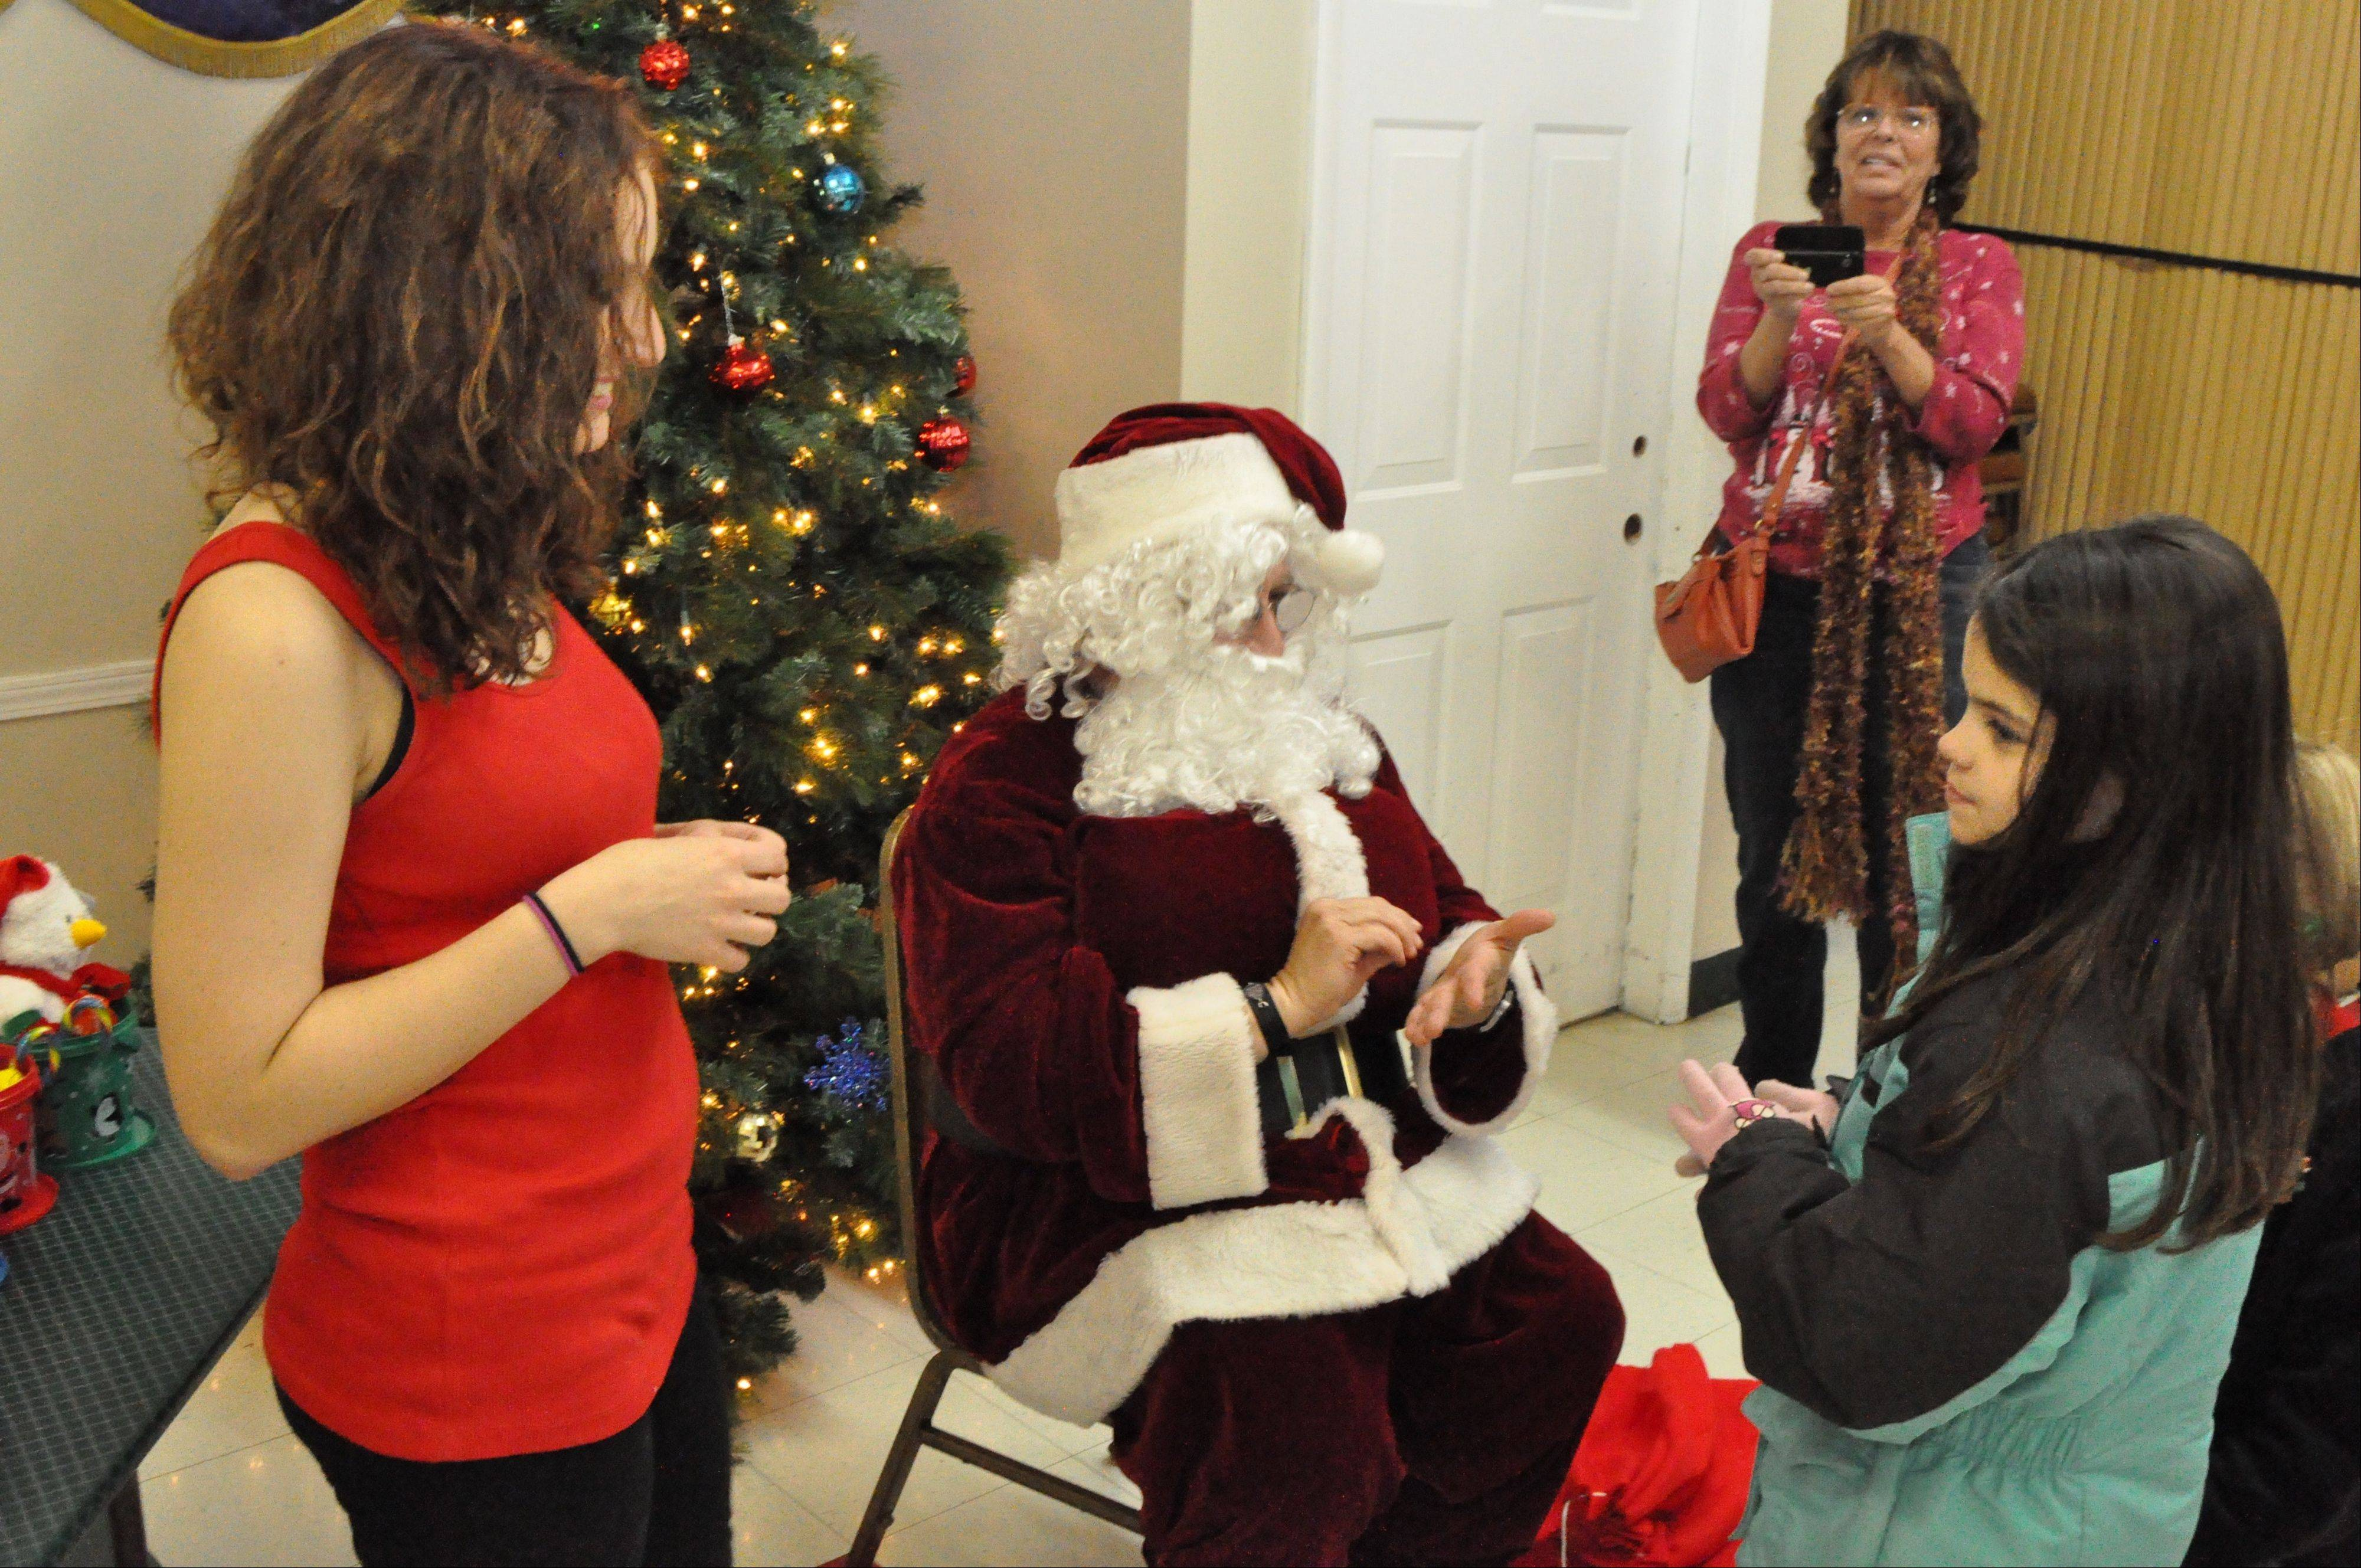 Santa brings joy and presents to 100 hearing-impaired kids at a recent pizza party. Helping him out are Angela Hatcher of Aurora, a West Aurora High School senior and Santa's assistant; and Jeanne McDonald, Naperville, a deaf teacher at Allen Elementary School, Aurora.